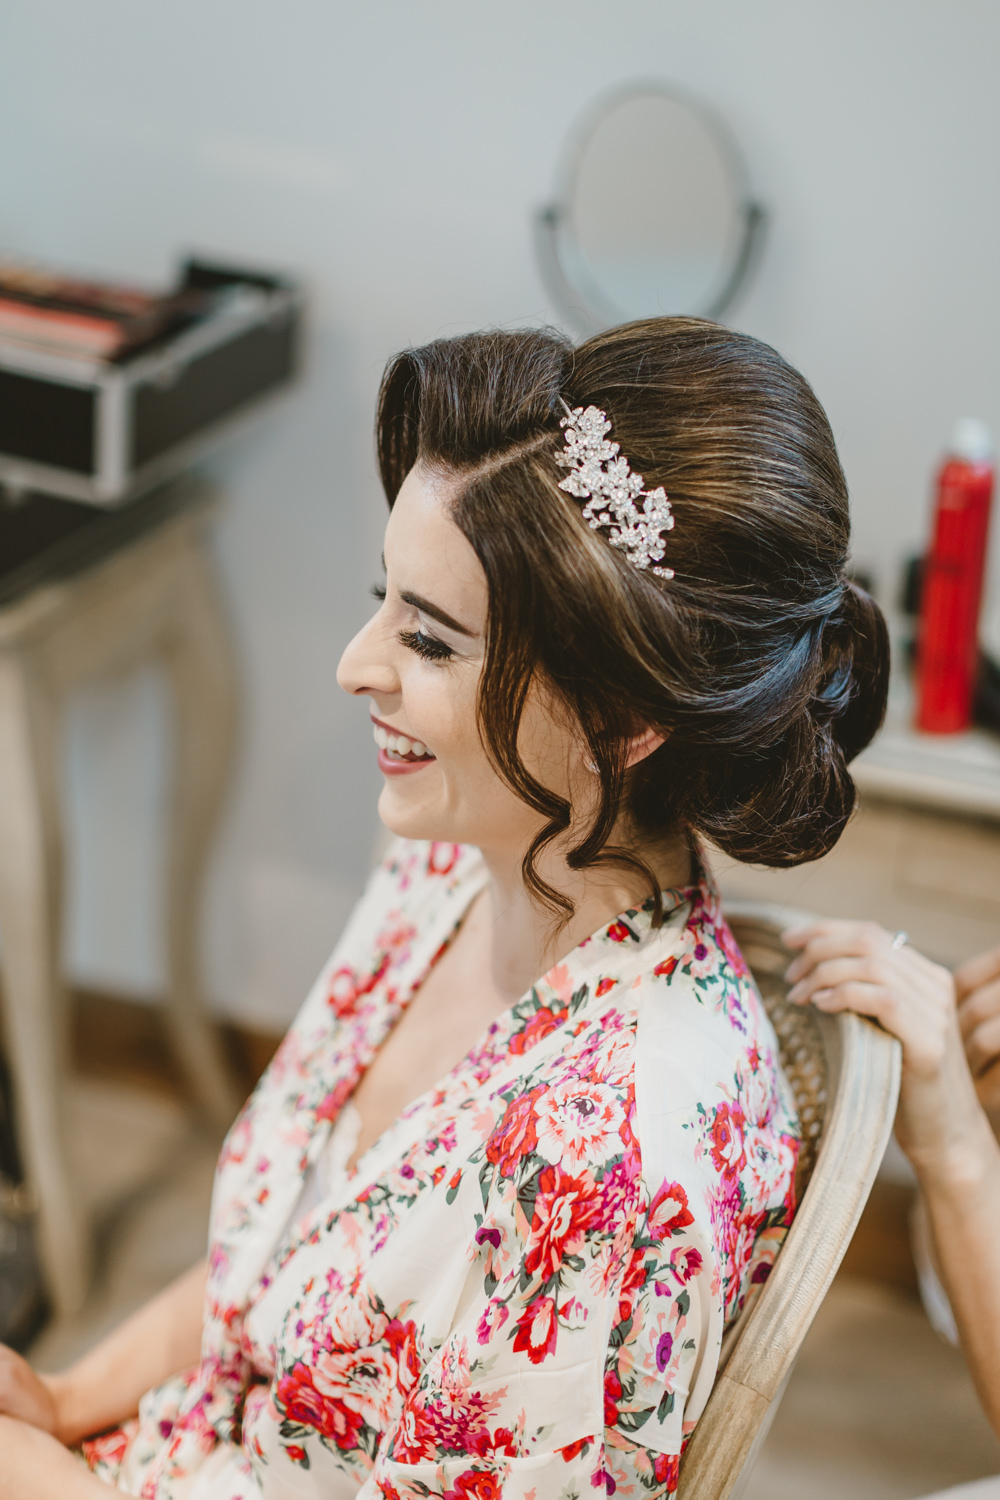 Hair Bride Bridal Up Do Style Accessory GG's Yard Wedding Amy Lou Photography